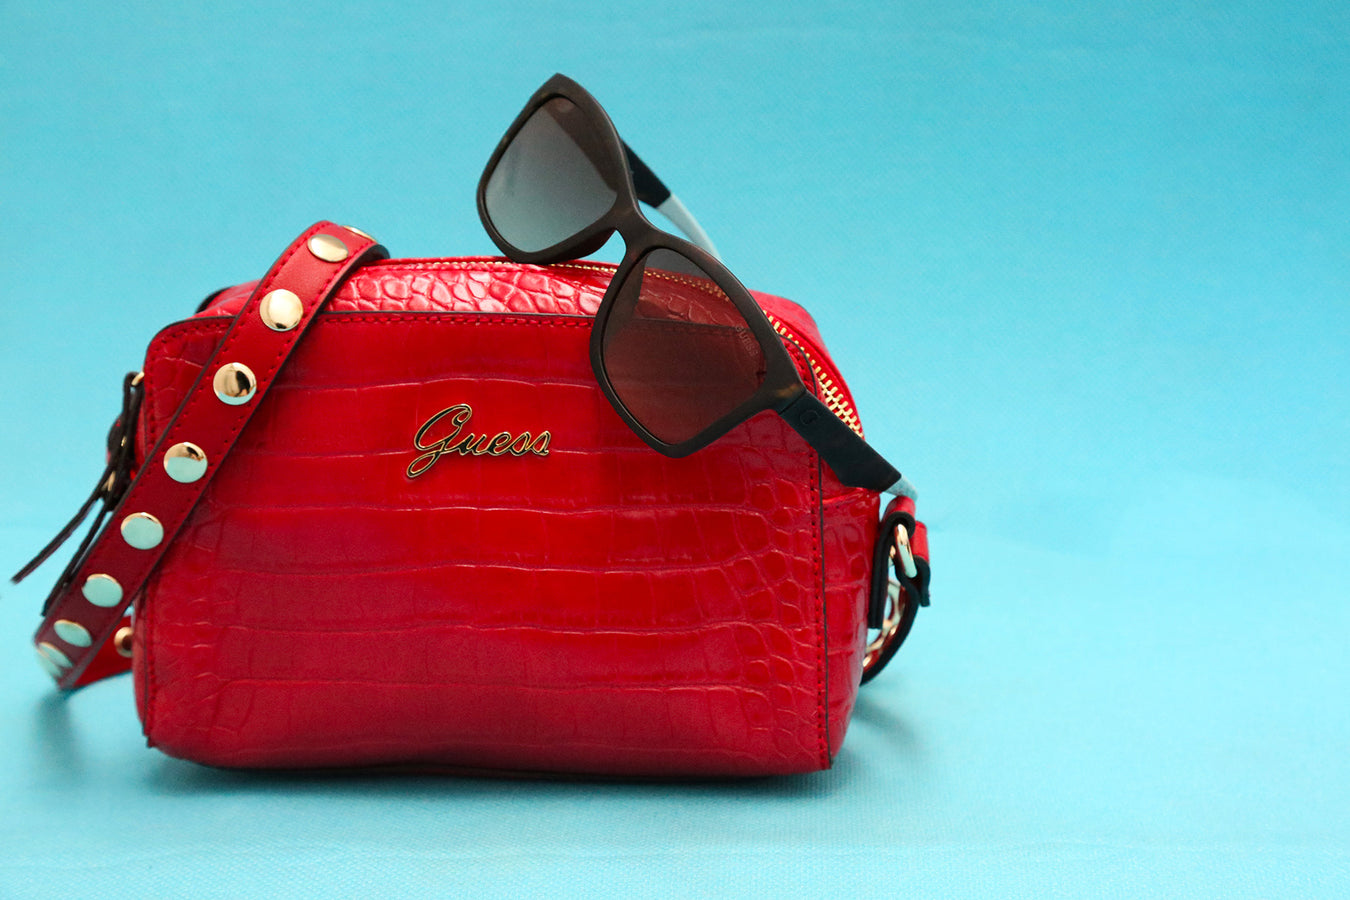 Guess womens cross body bag in red & sunglasses in red